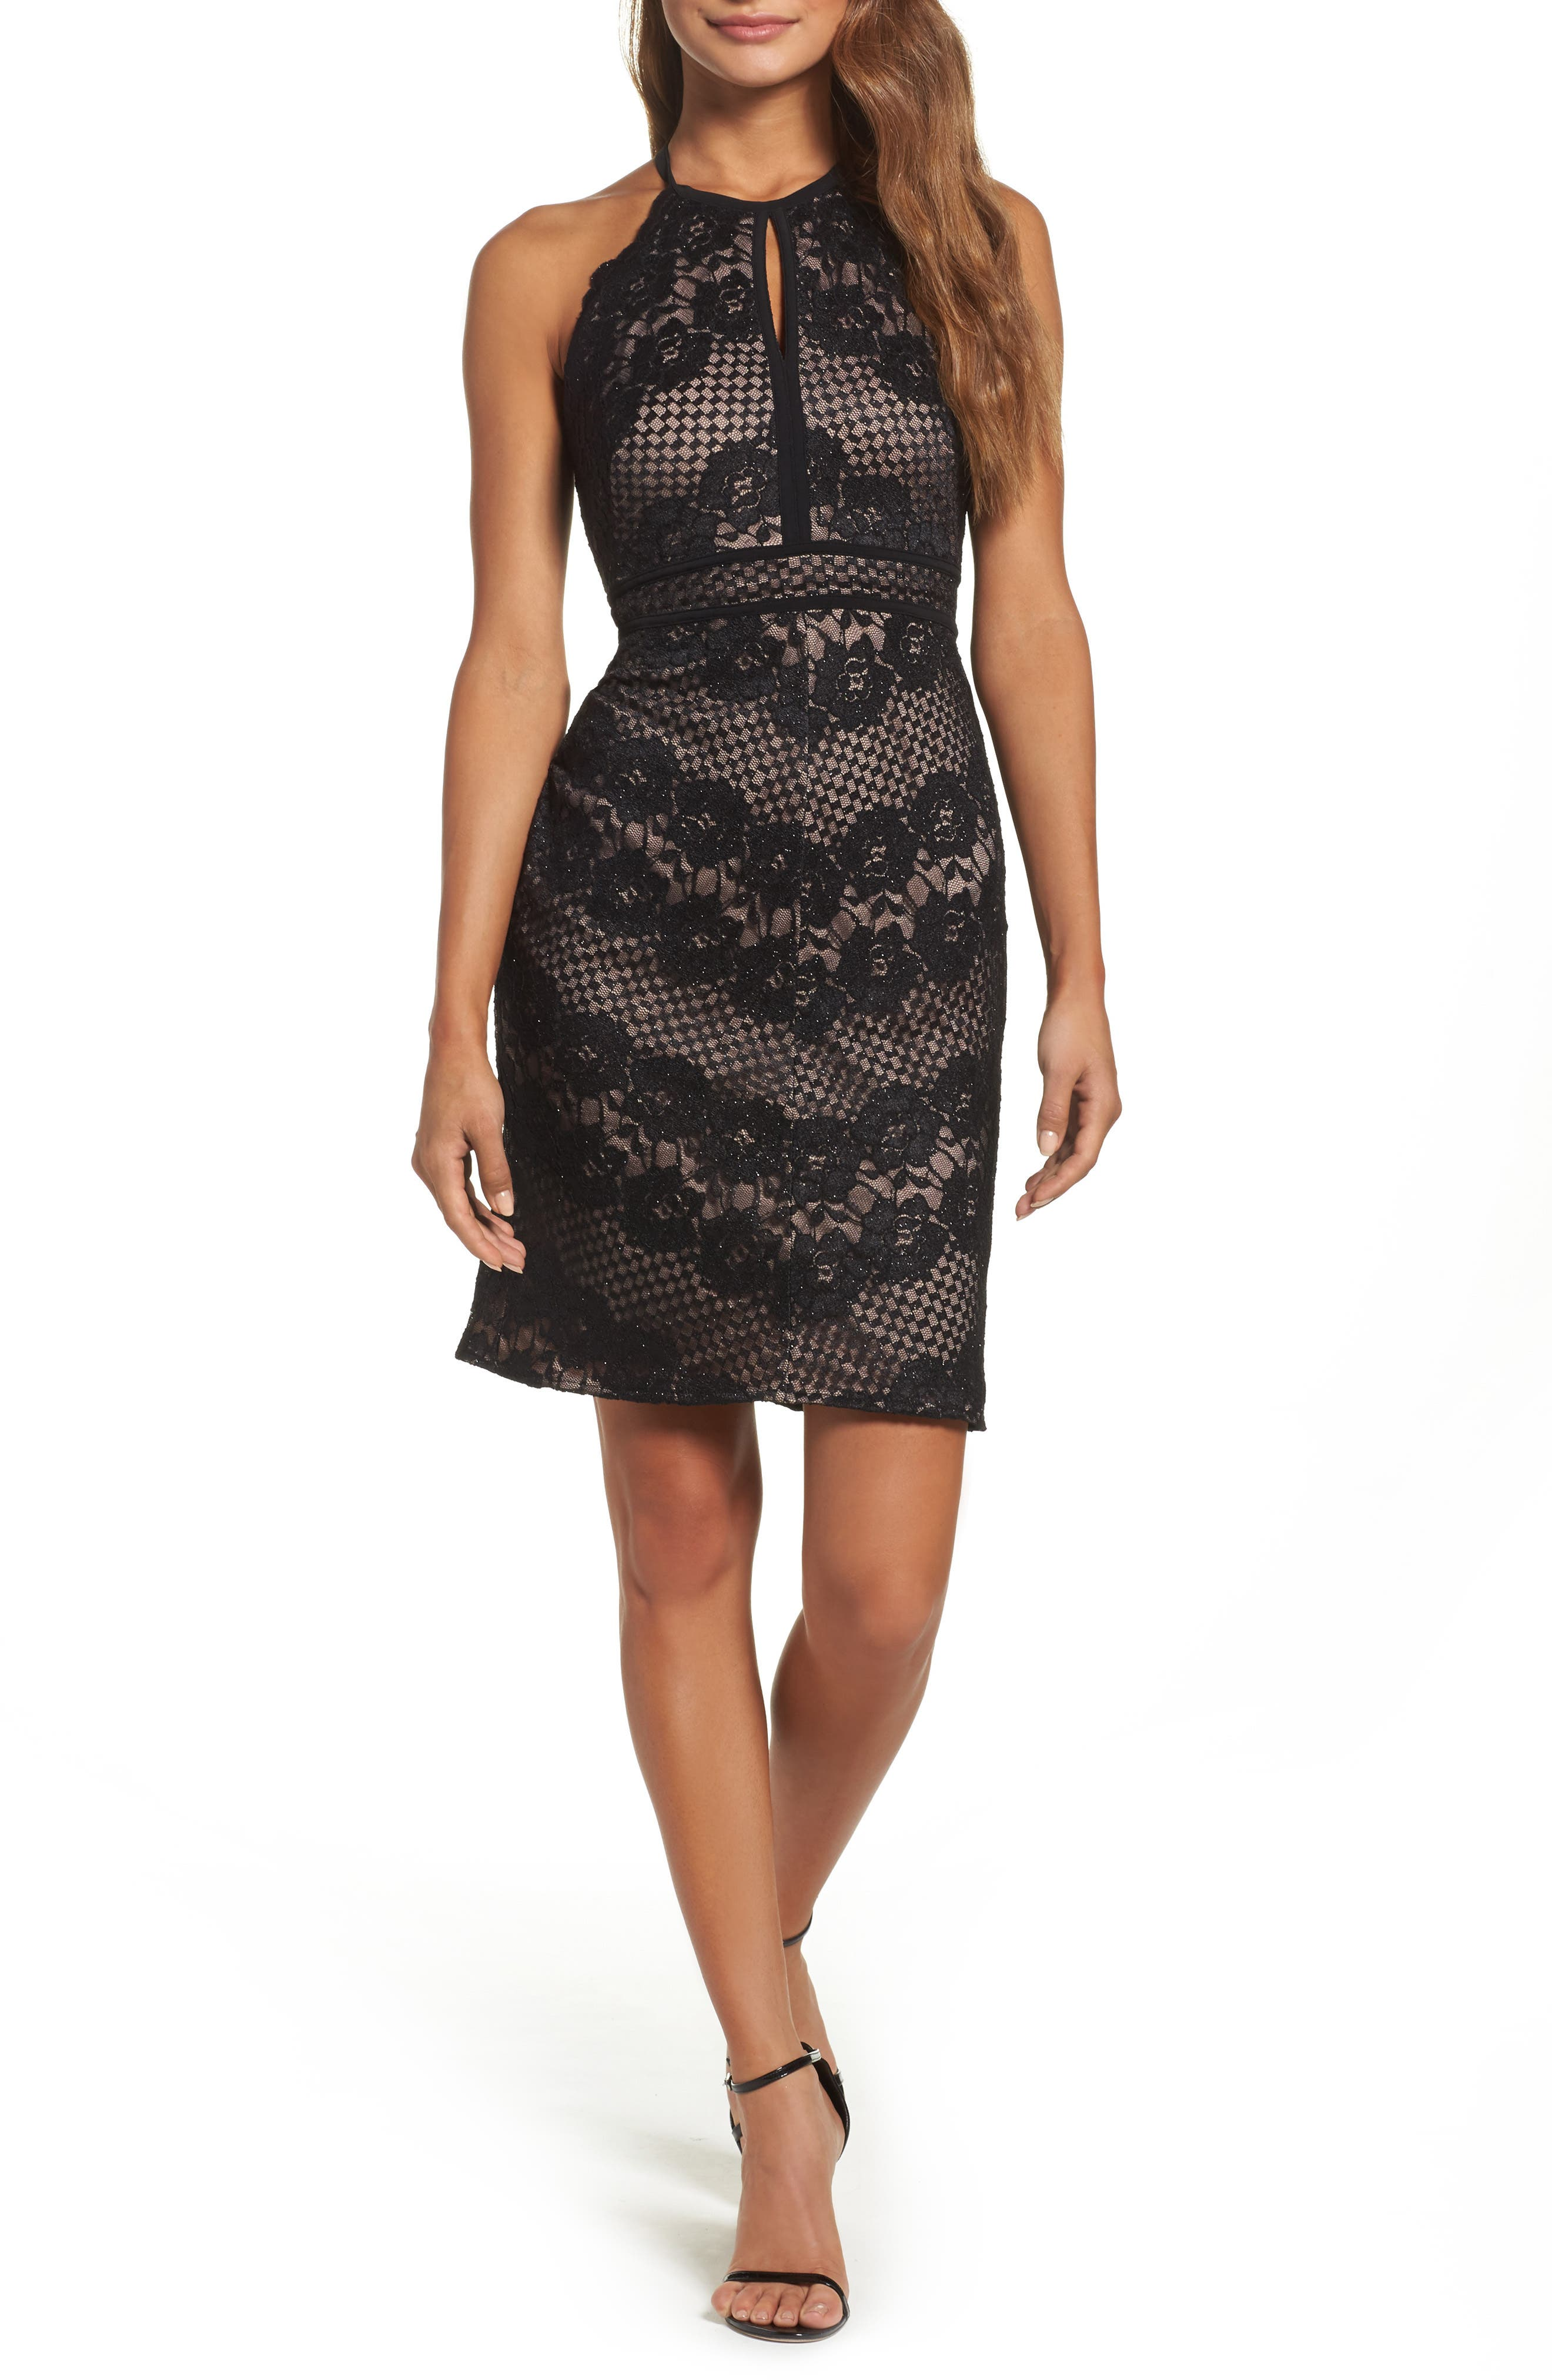 Alternate Image 1 Selected - Morgan & Co. Mitered Lace Halter Body-Con Dress